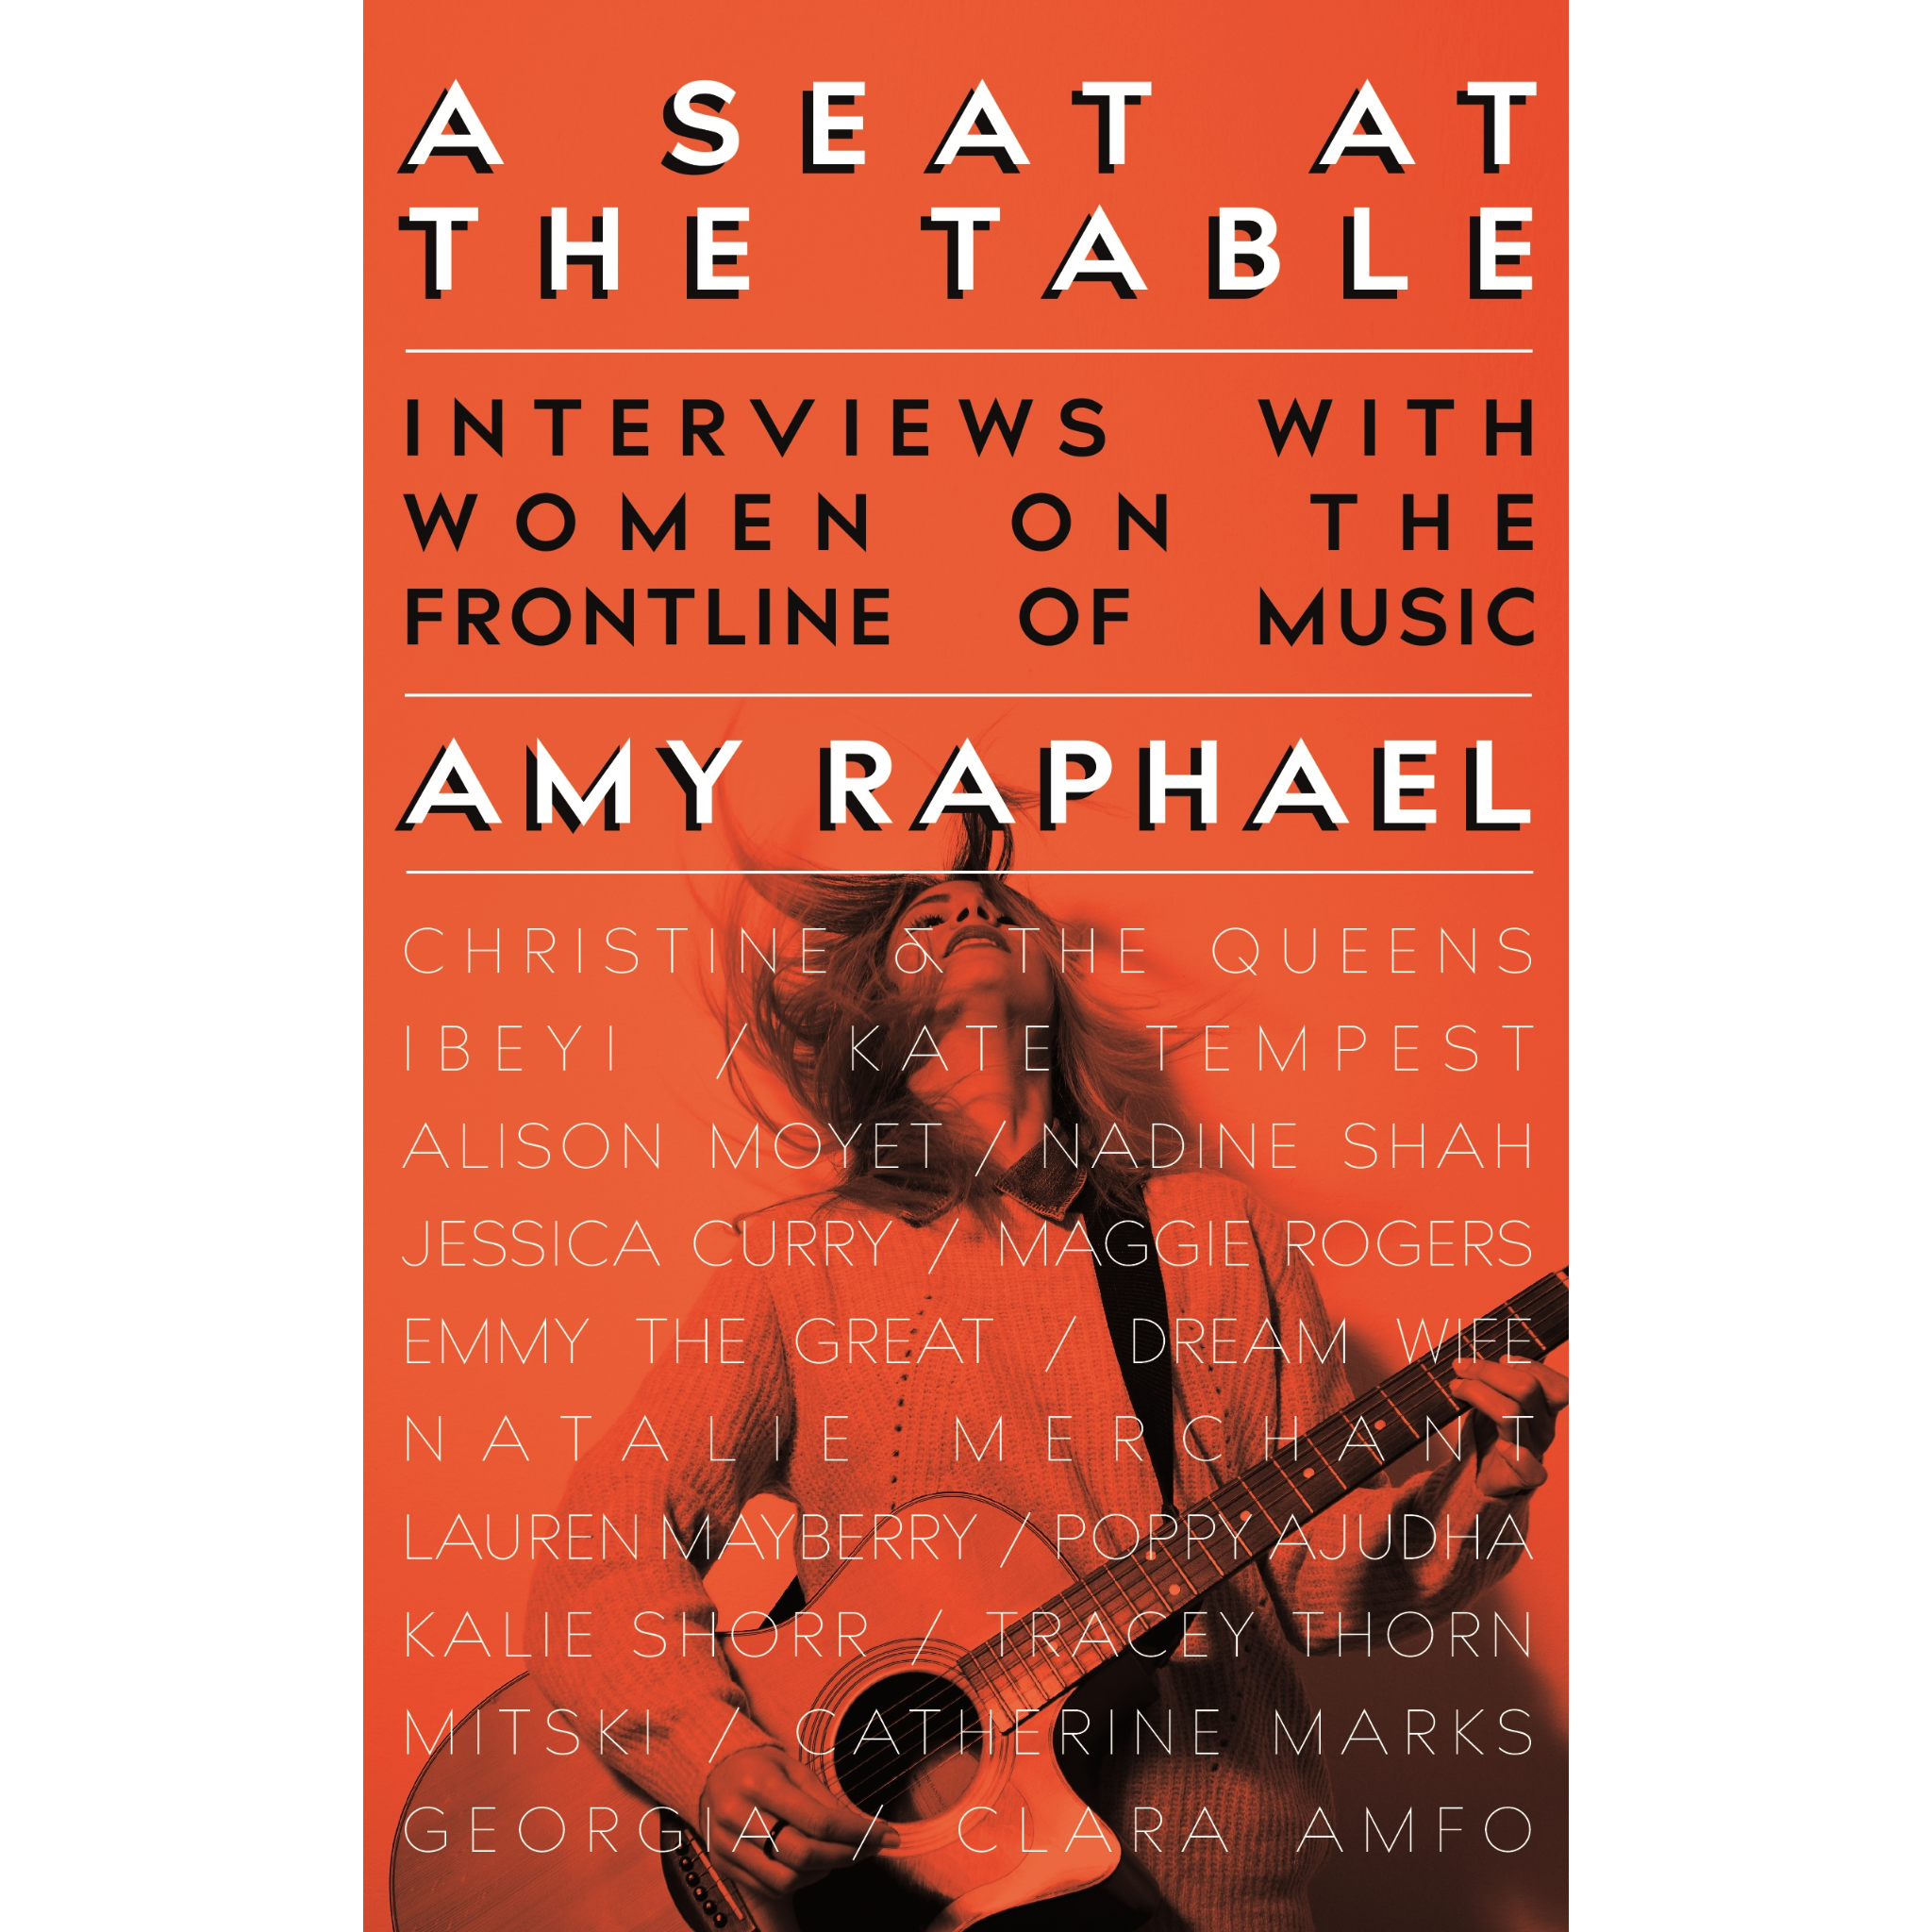 Immagini Natale 400 X 150 Pixel.A Seat At The Table Interviews With Women On The Frontline Of Music At The Royal Albert Hall Shop